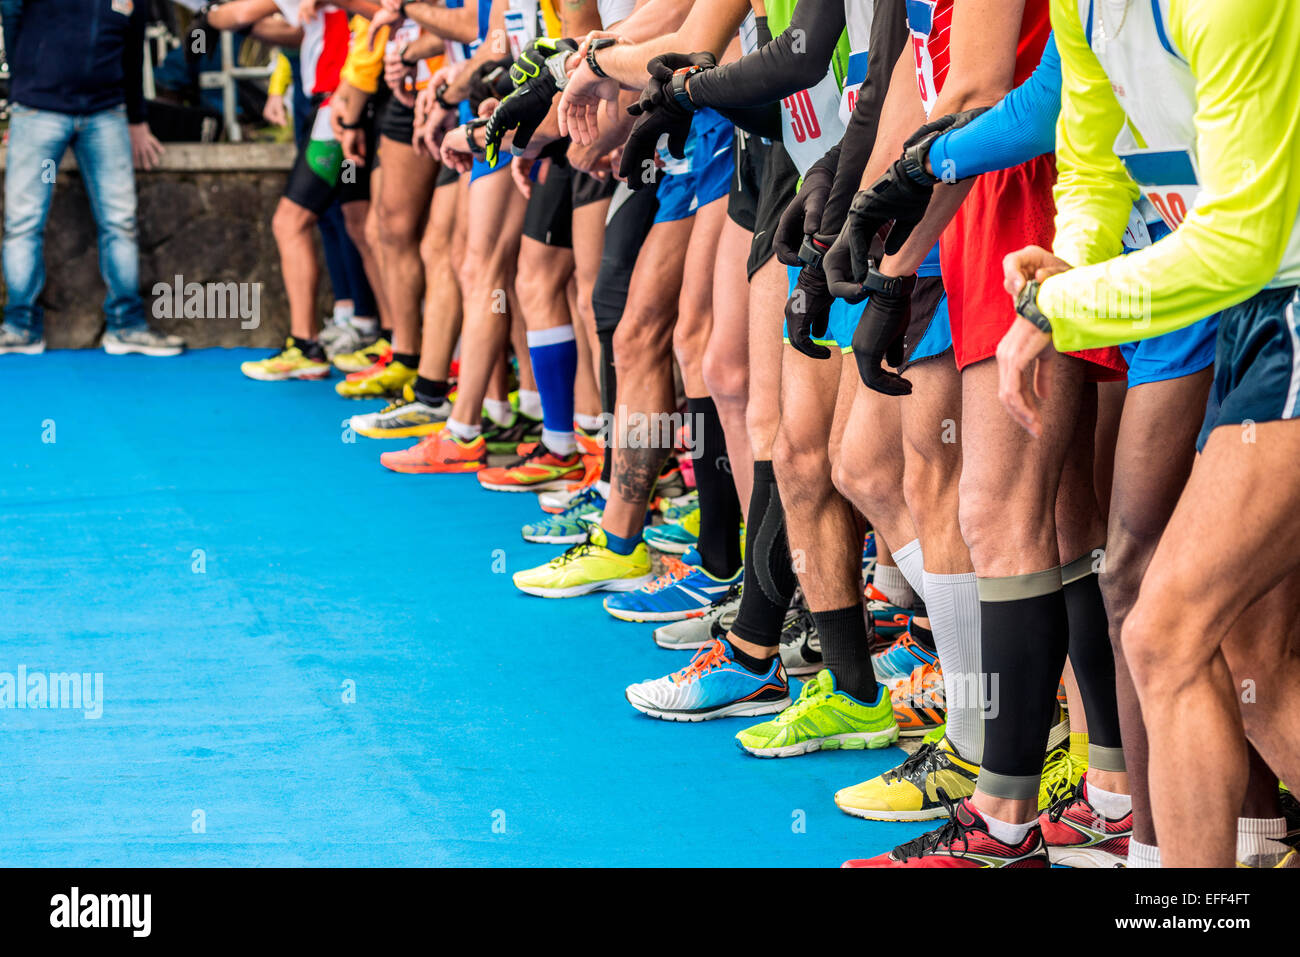 runners at the starting line - Stock Image